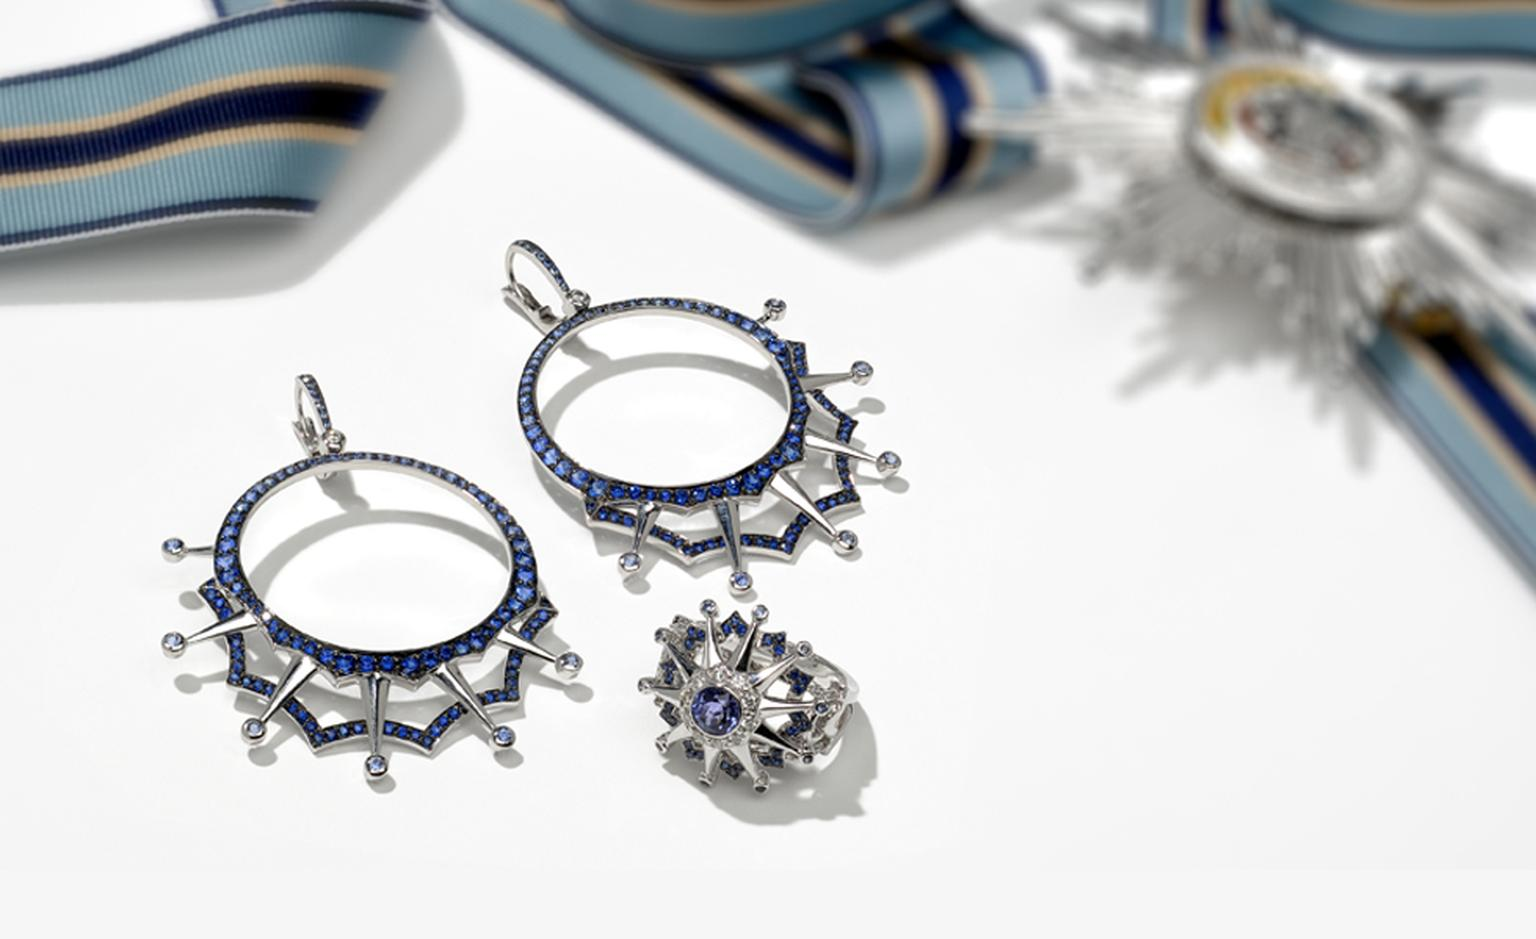 Star and Garter Collection by Garrard. Left: Blackened white gold and sapphire drop hoop earrings: Price from £7000. Right: White gold ring with tanzanite centre stone and paved with diamonds, sapphires and tanzanites: Price from £4800.